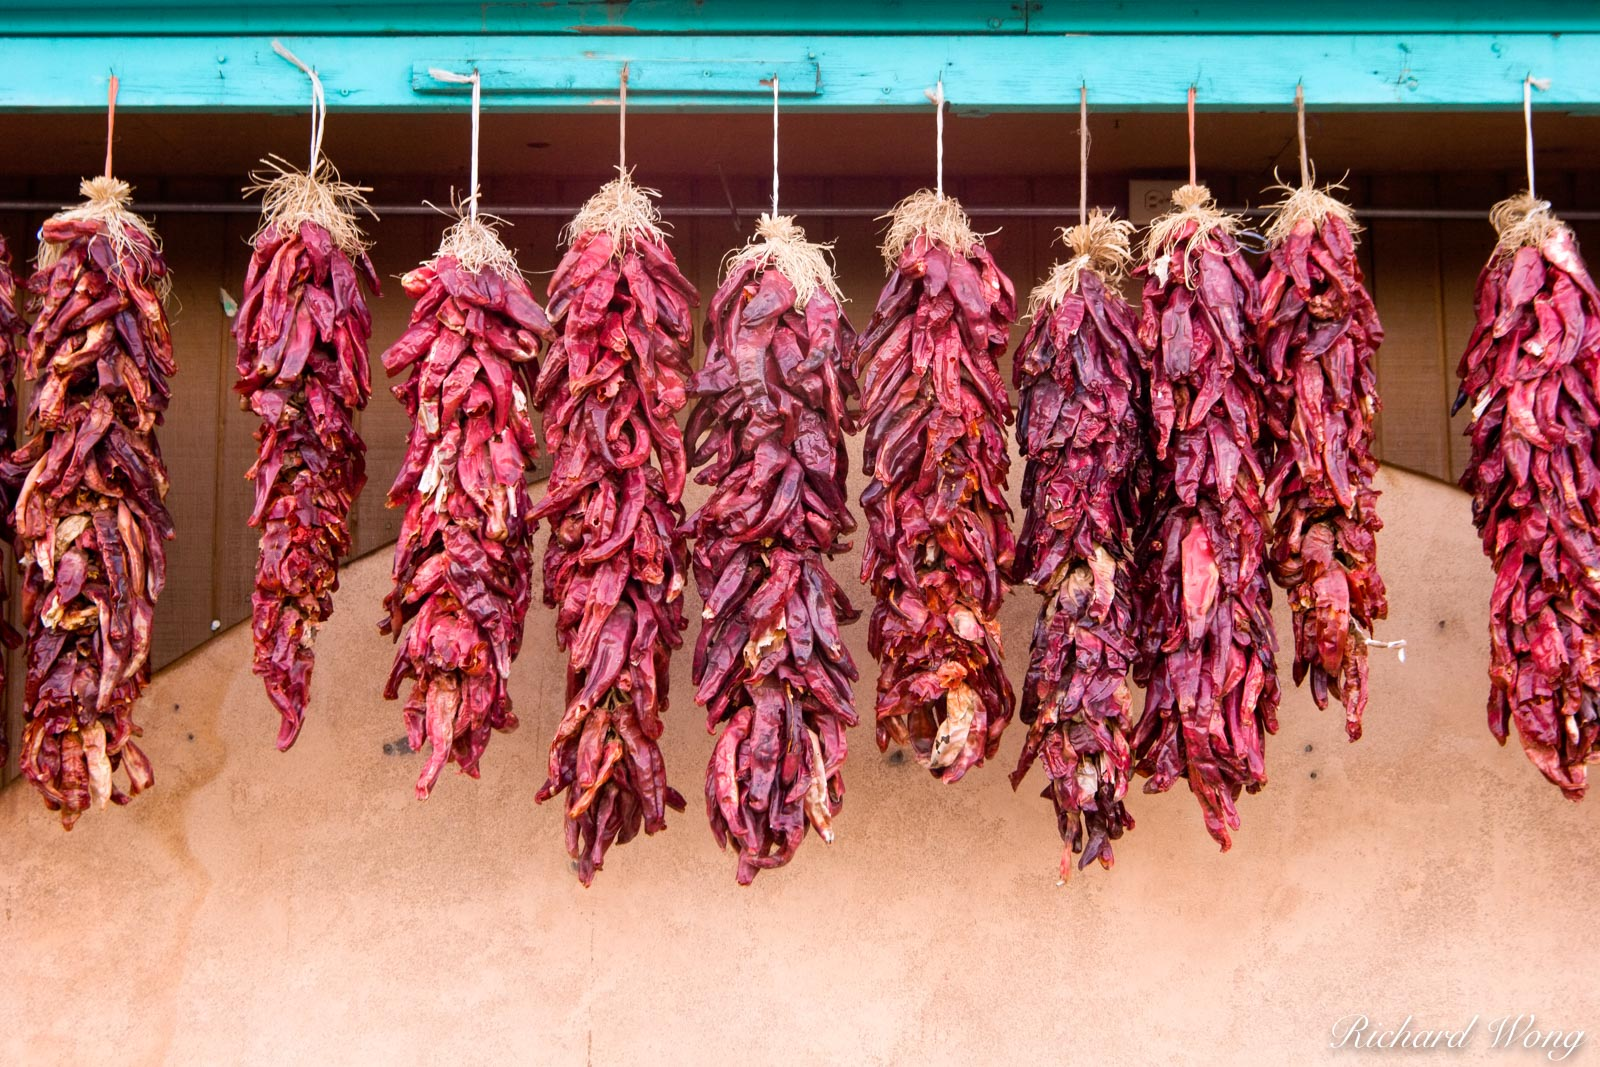 New Mexico, chili, color, colorful, colors, cultural, culture, dehydrated, dried, drying, food, hanging, hot, pepper, peppers, red chilis, southwest, southwestern, spice, spices, spicy, taos, travel, , photo